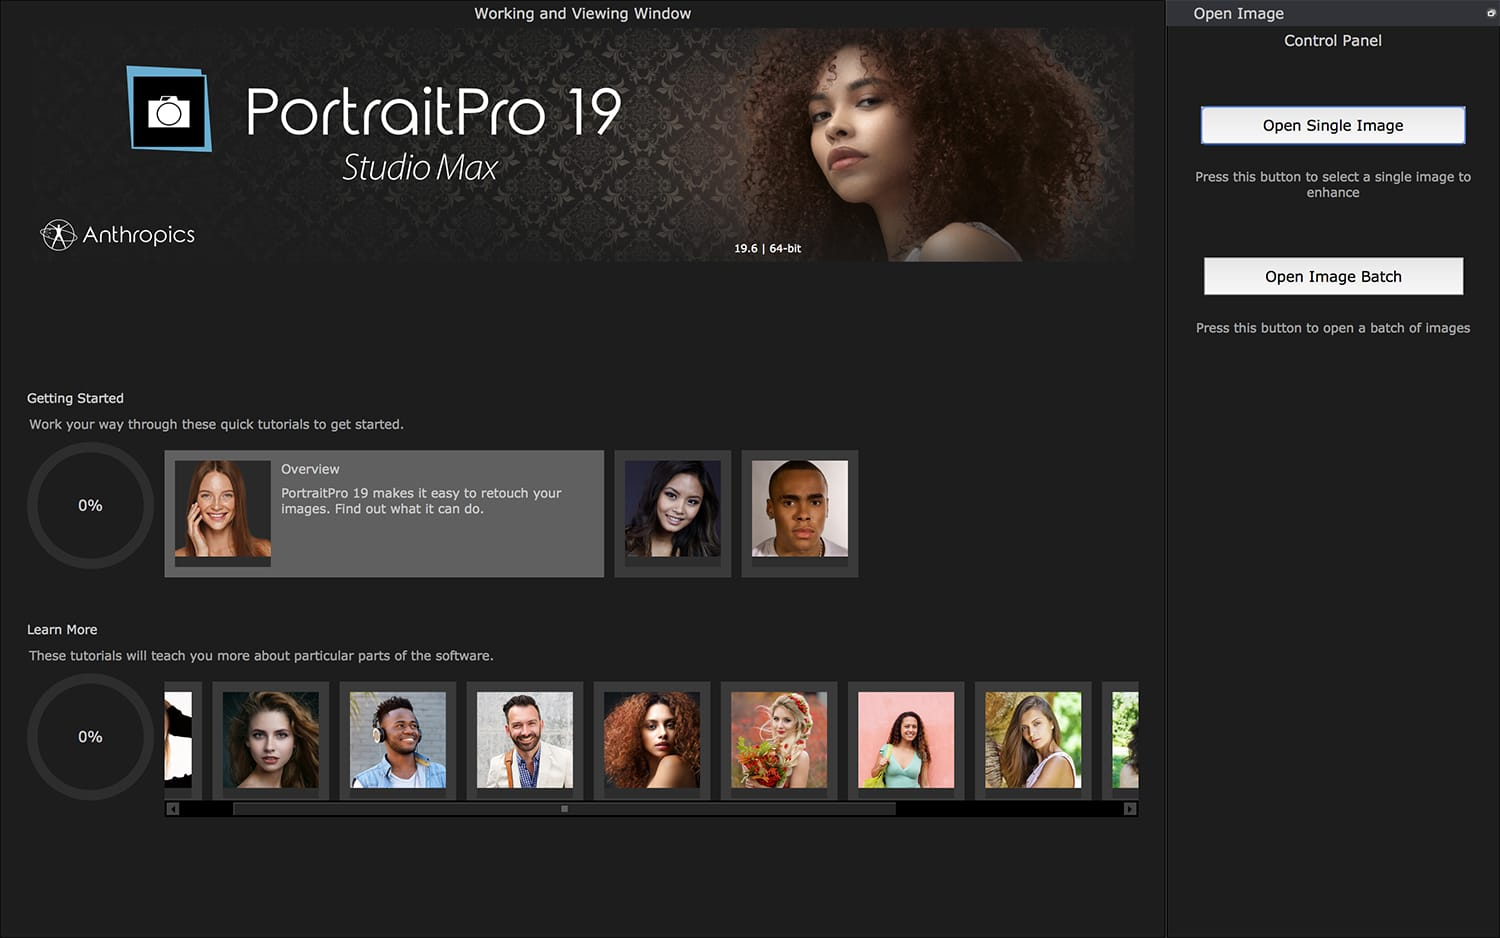 Review of PortraitPro 19 Retouching Software from Anthropics